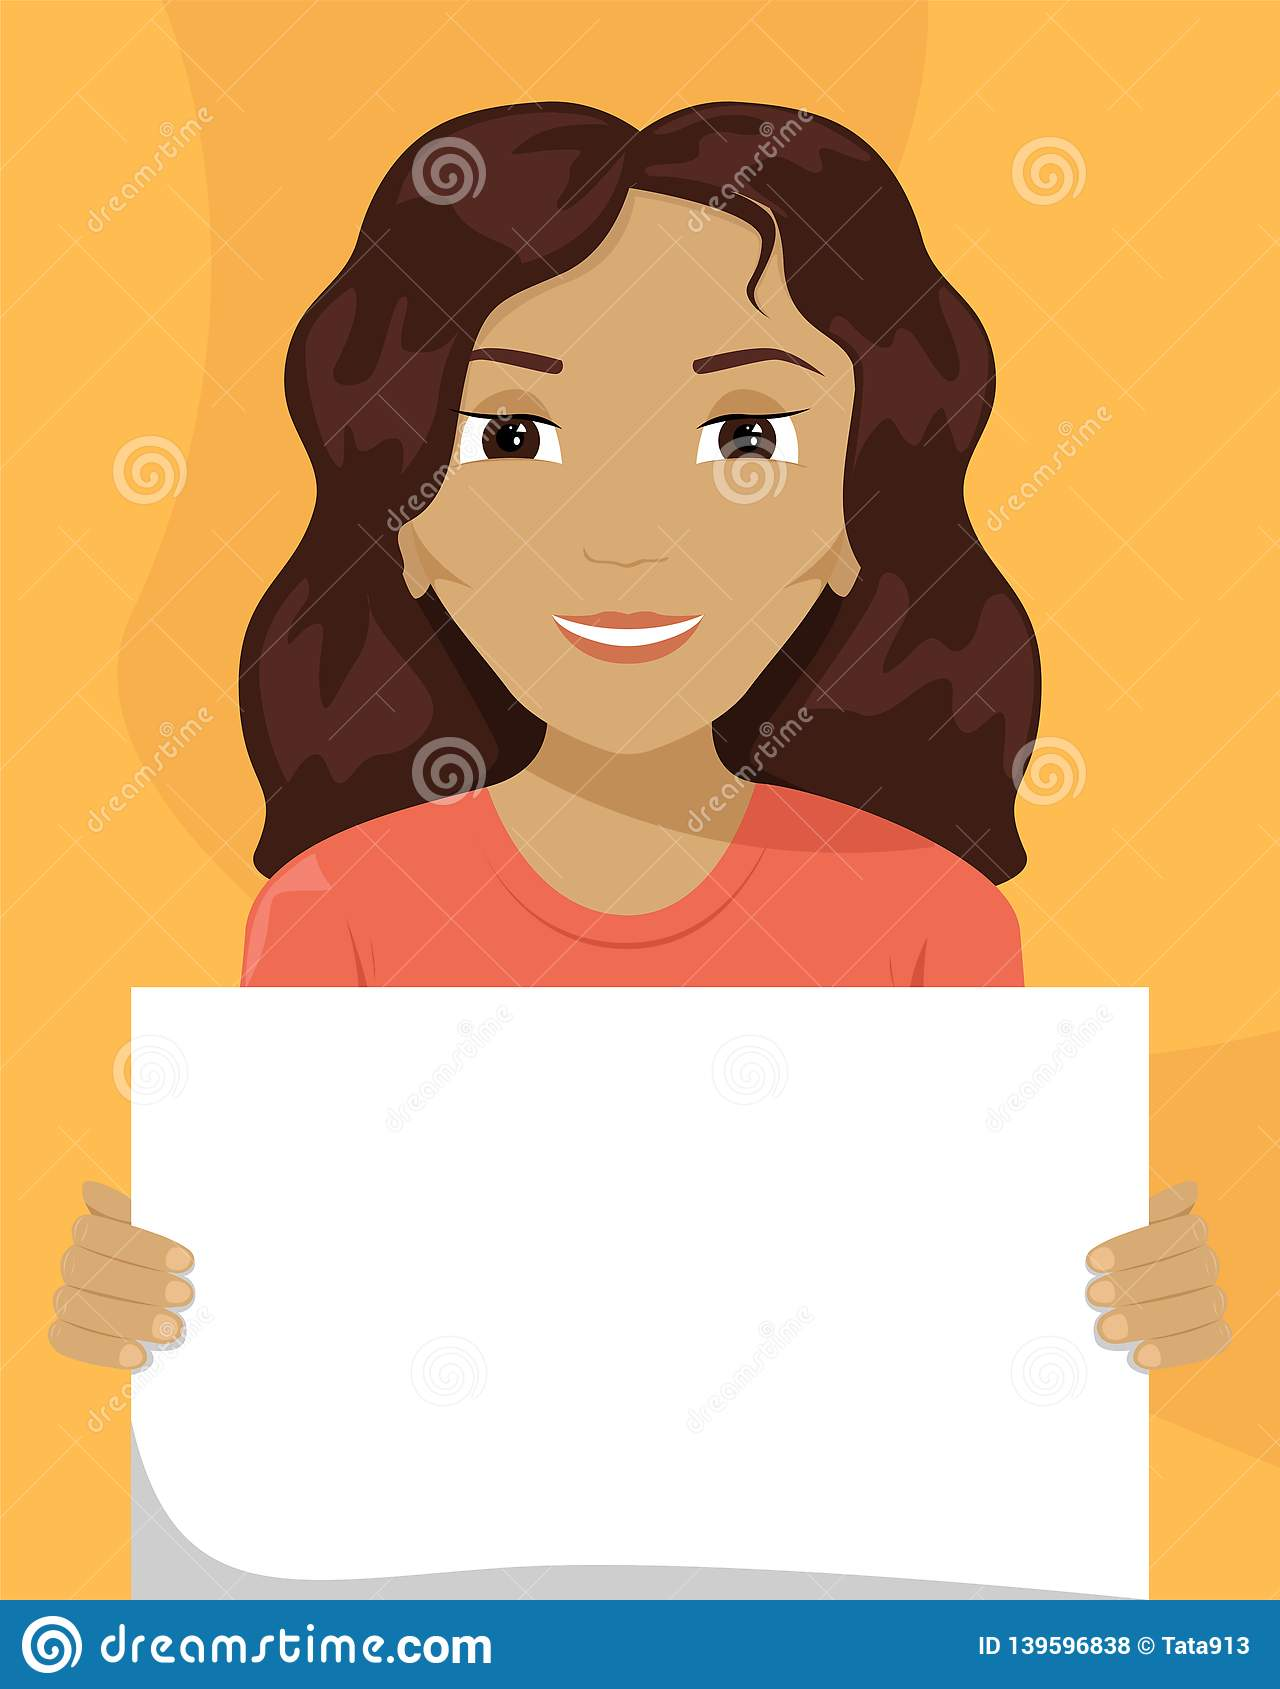 Vector flat illustration of a mixed-race woman with a placard in her hands. Racial diversity